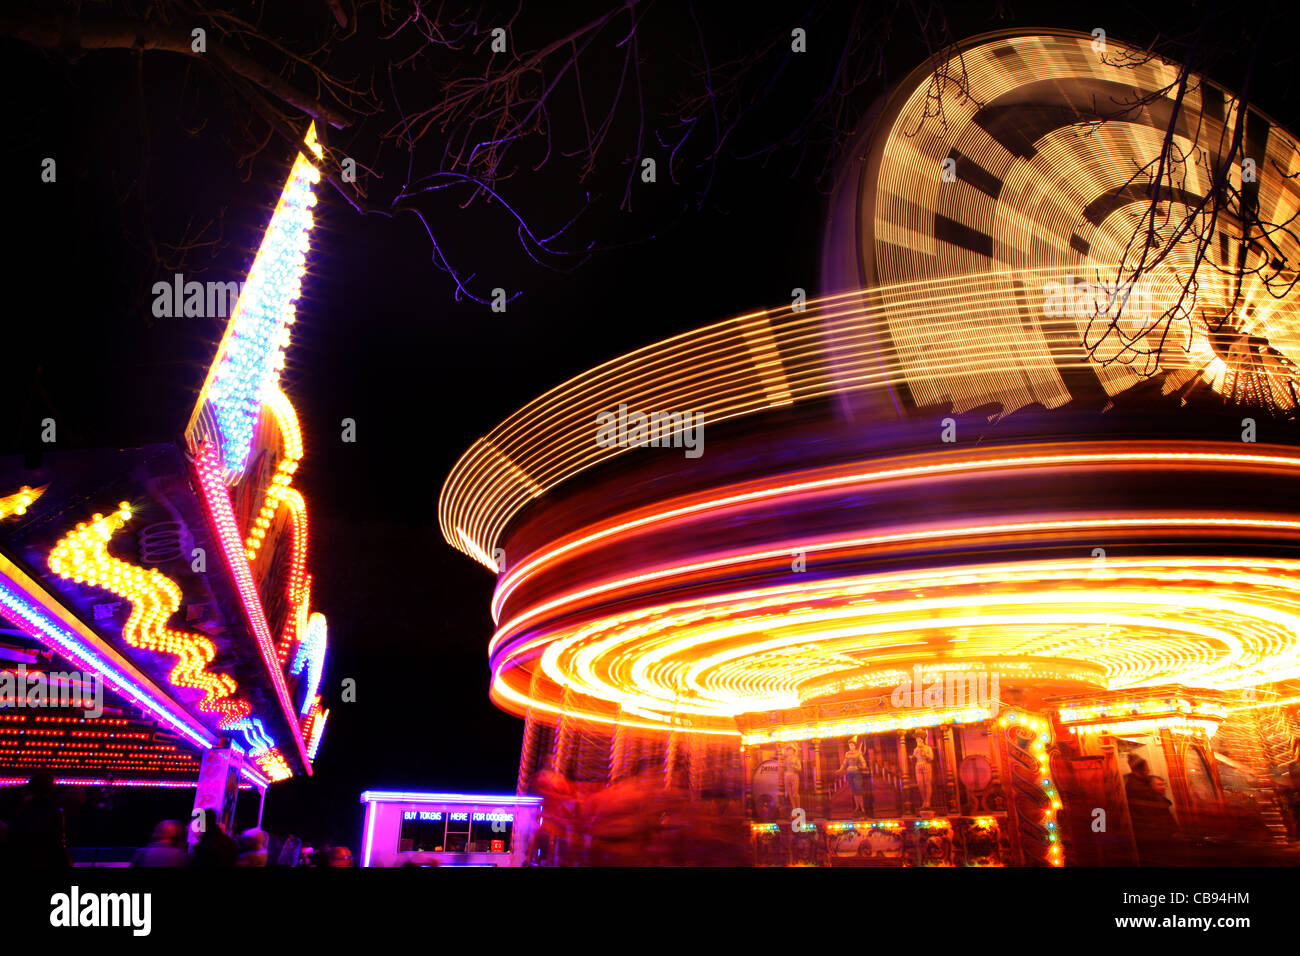 carousel in motion at night - Stock Image